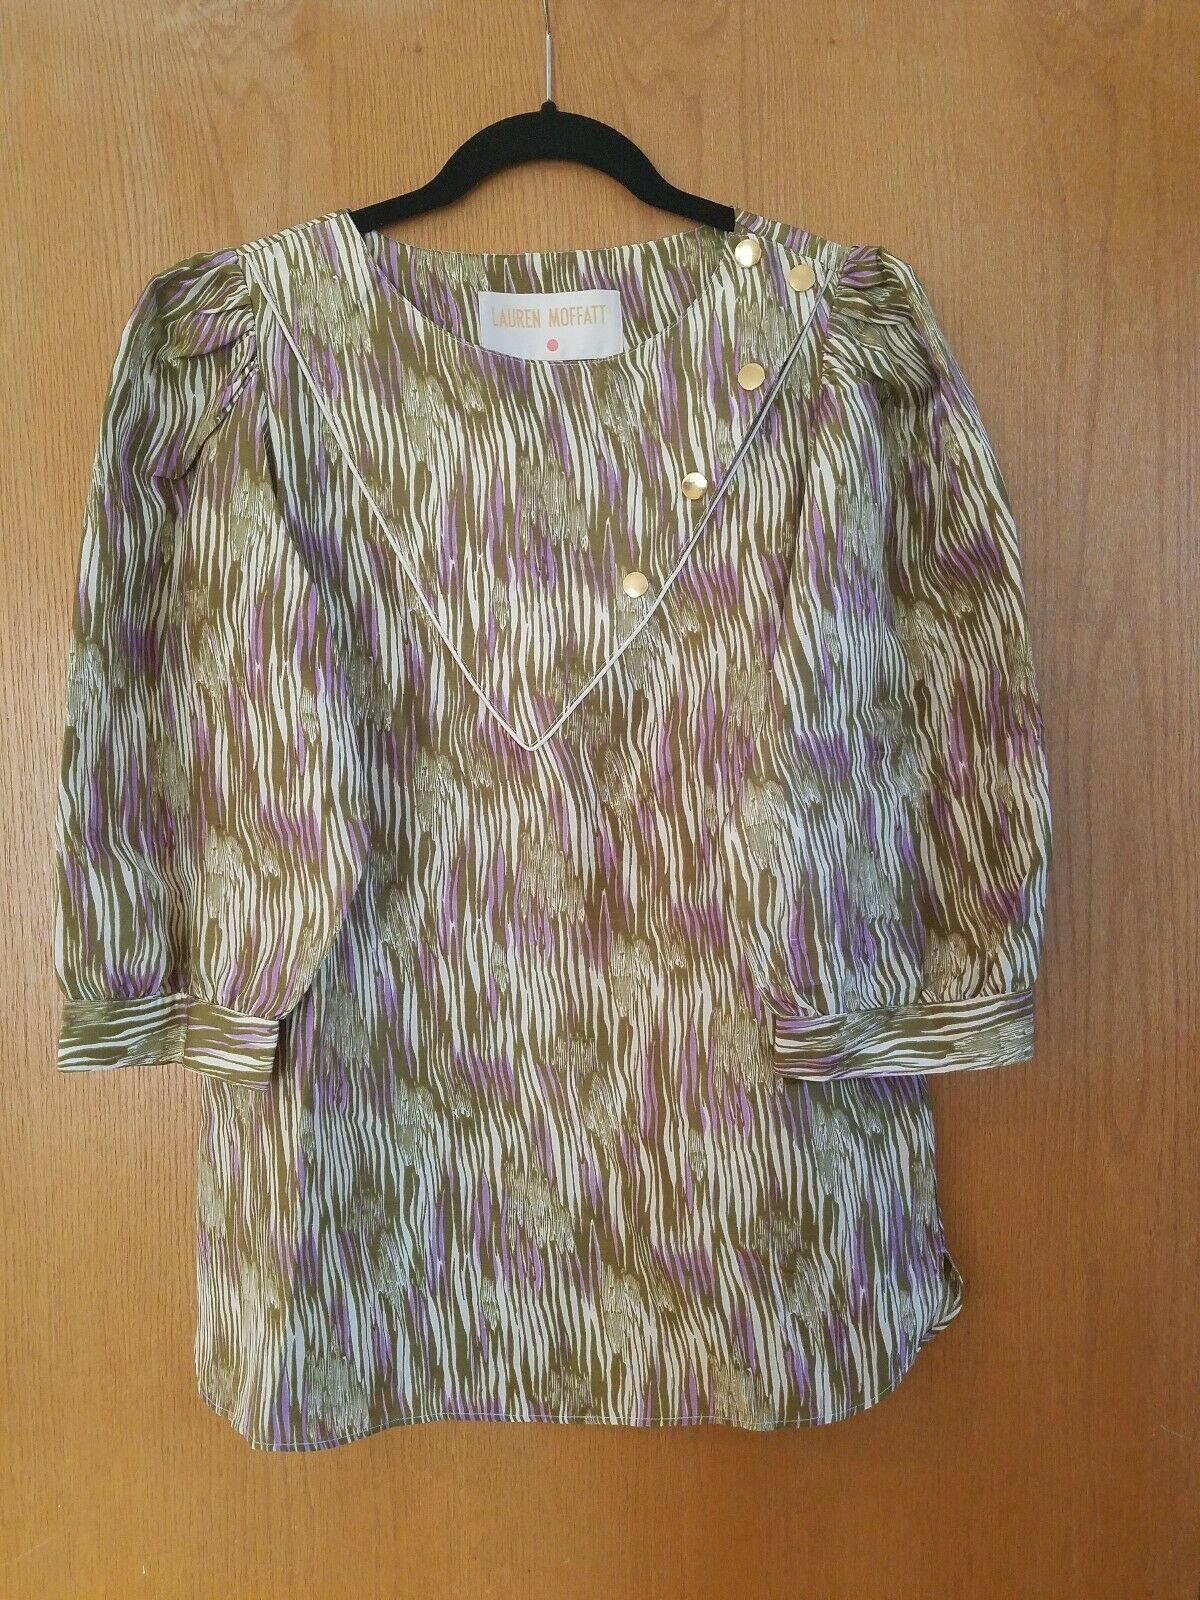 NWOT Anthropologie Lauren Moffatt Silk Blouse woodgrain print large